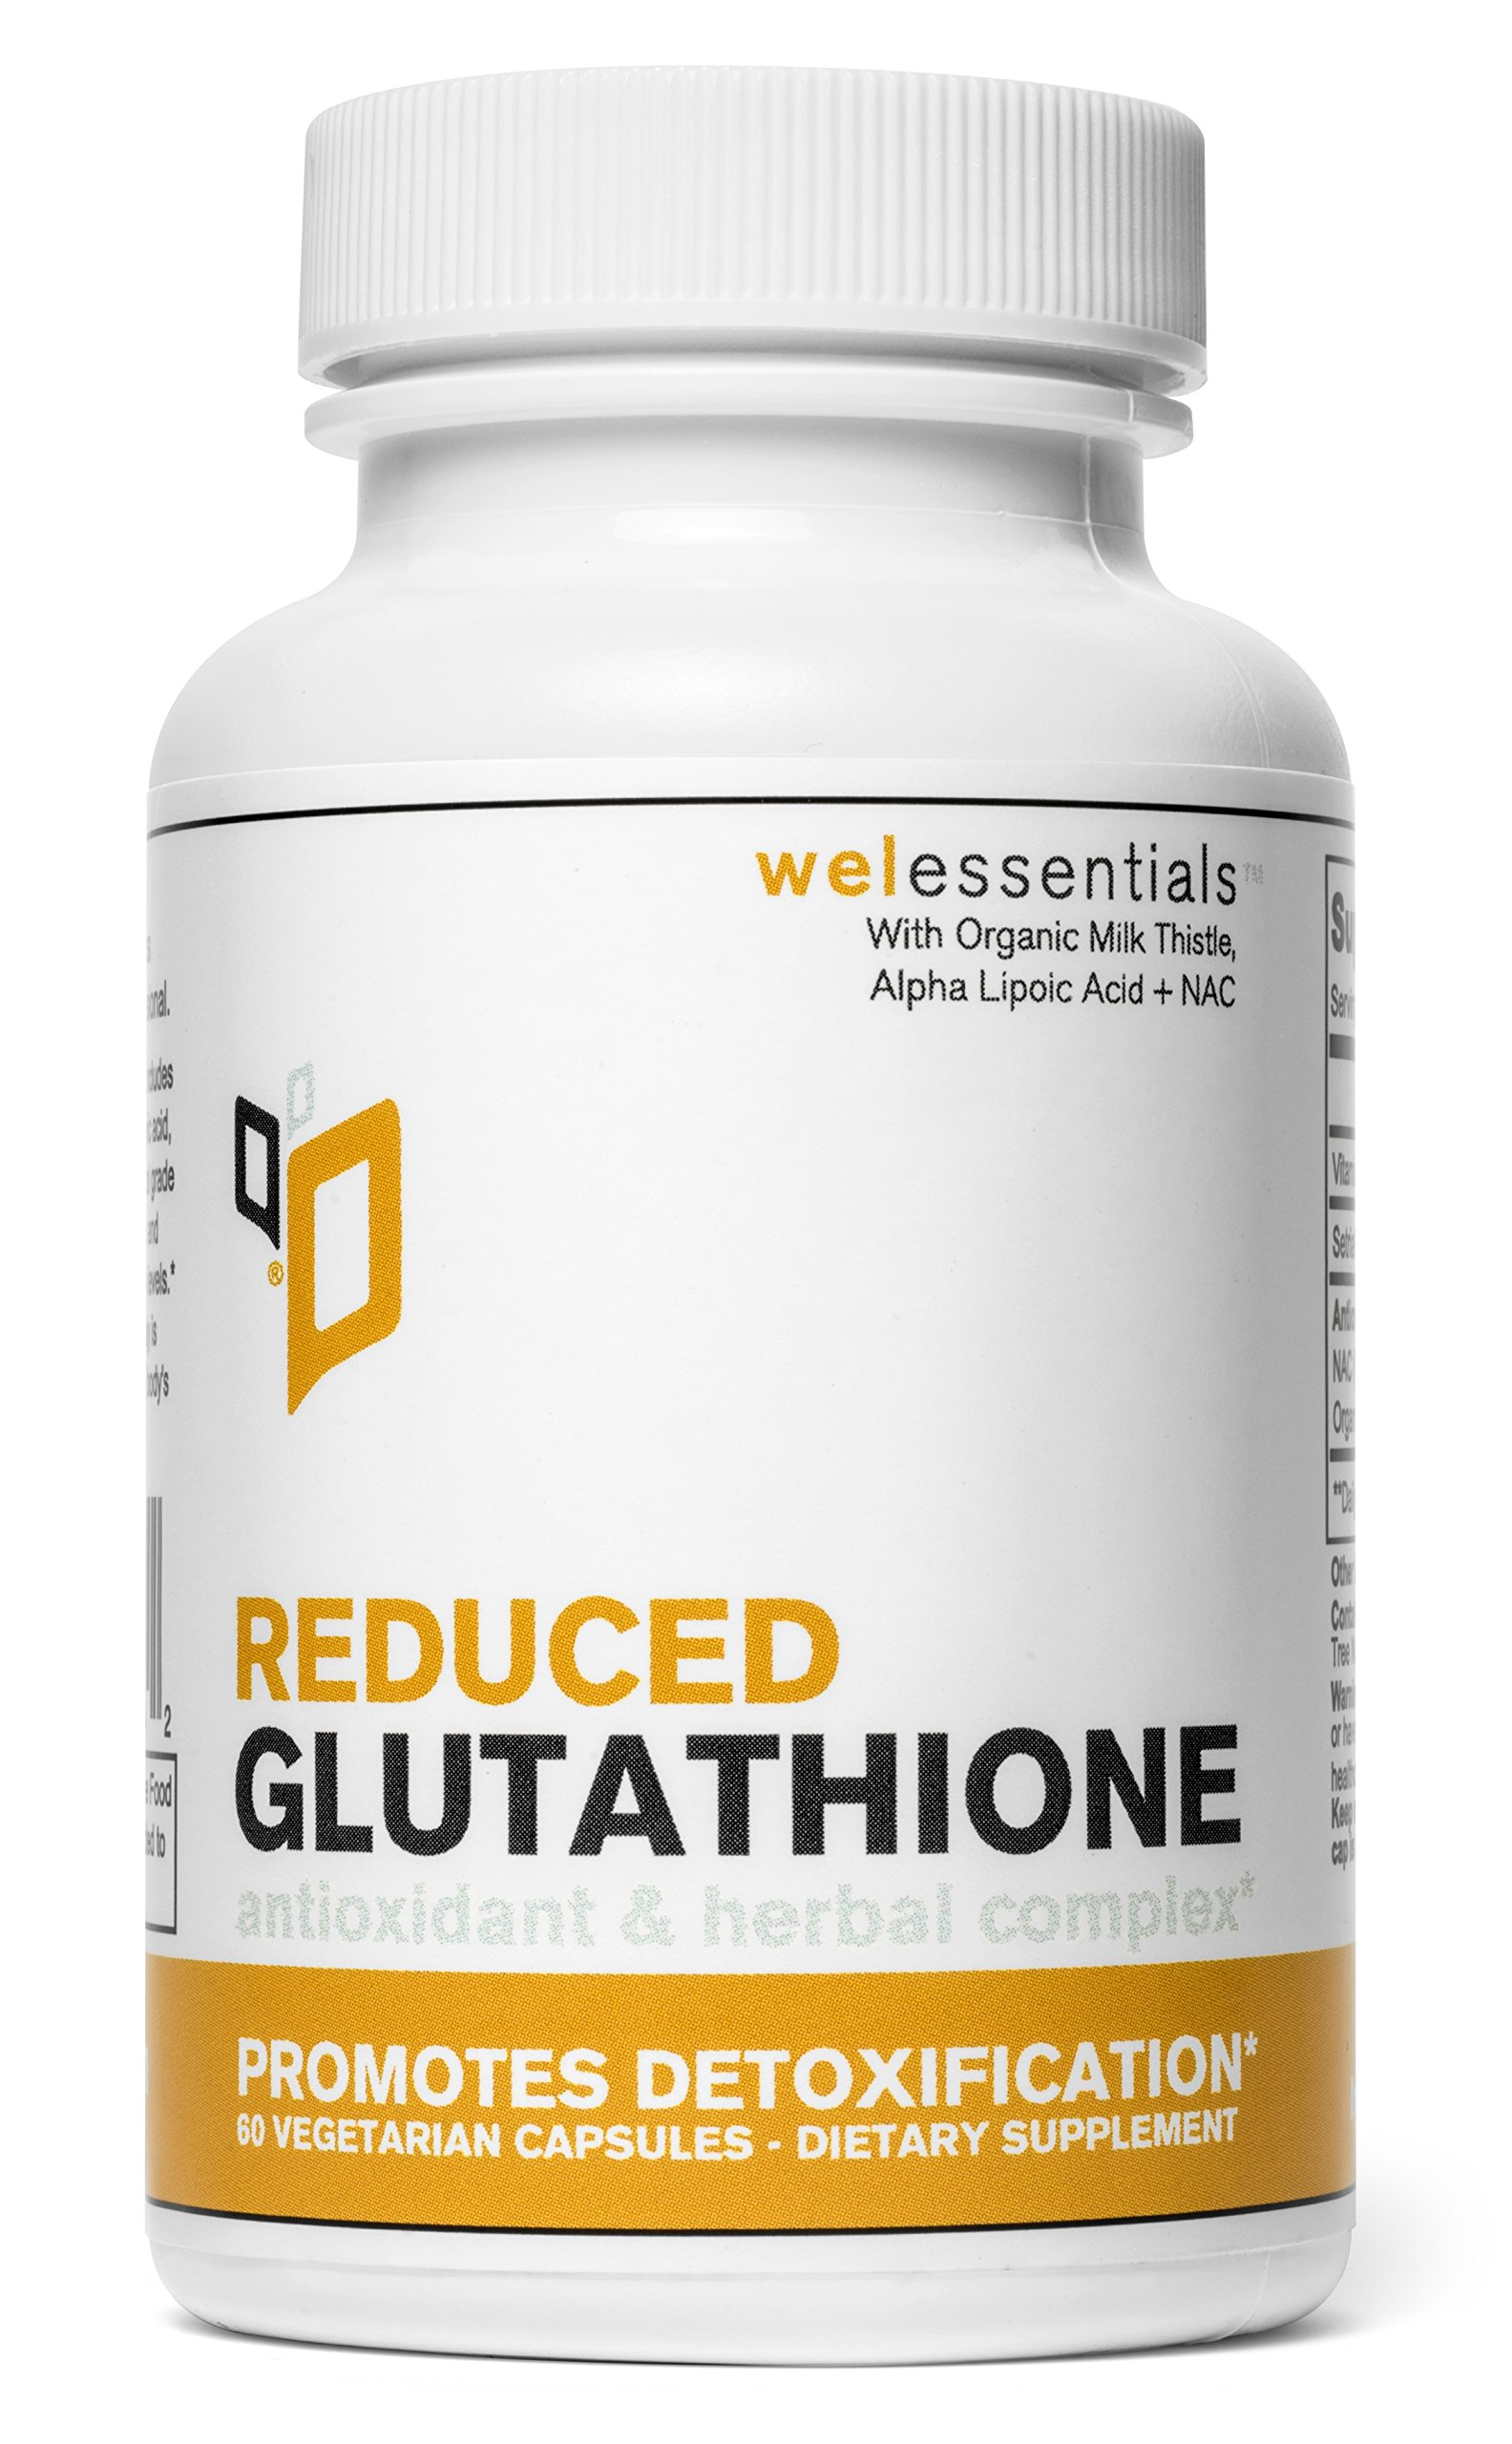 Wel EssentialsTM Glutathione Complex - Antioxidant & Herbal Complex to Promote Detoxification (With Glutathione (reduced), NAC, Alpha Lipoic Acid, Organic Milk Thistle)